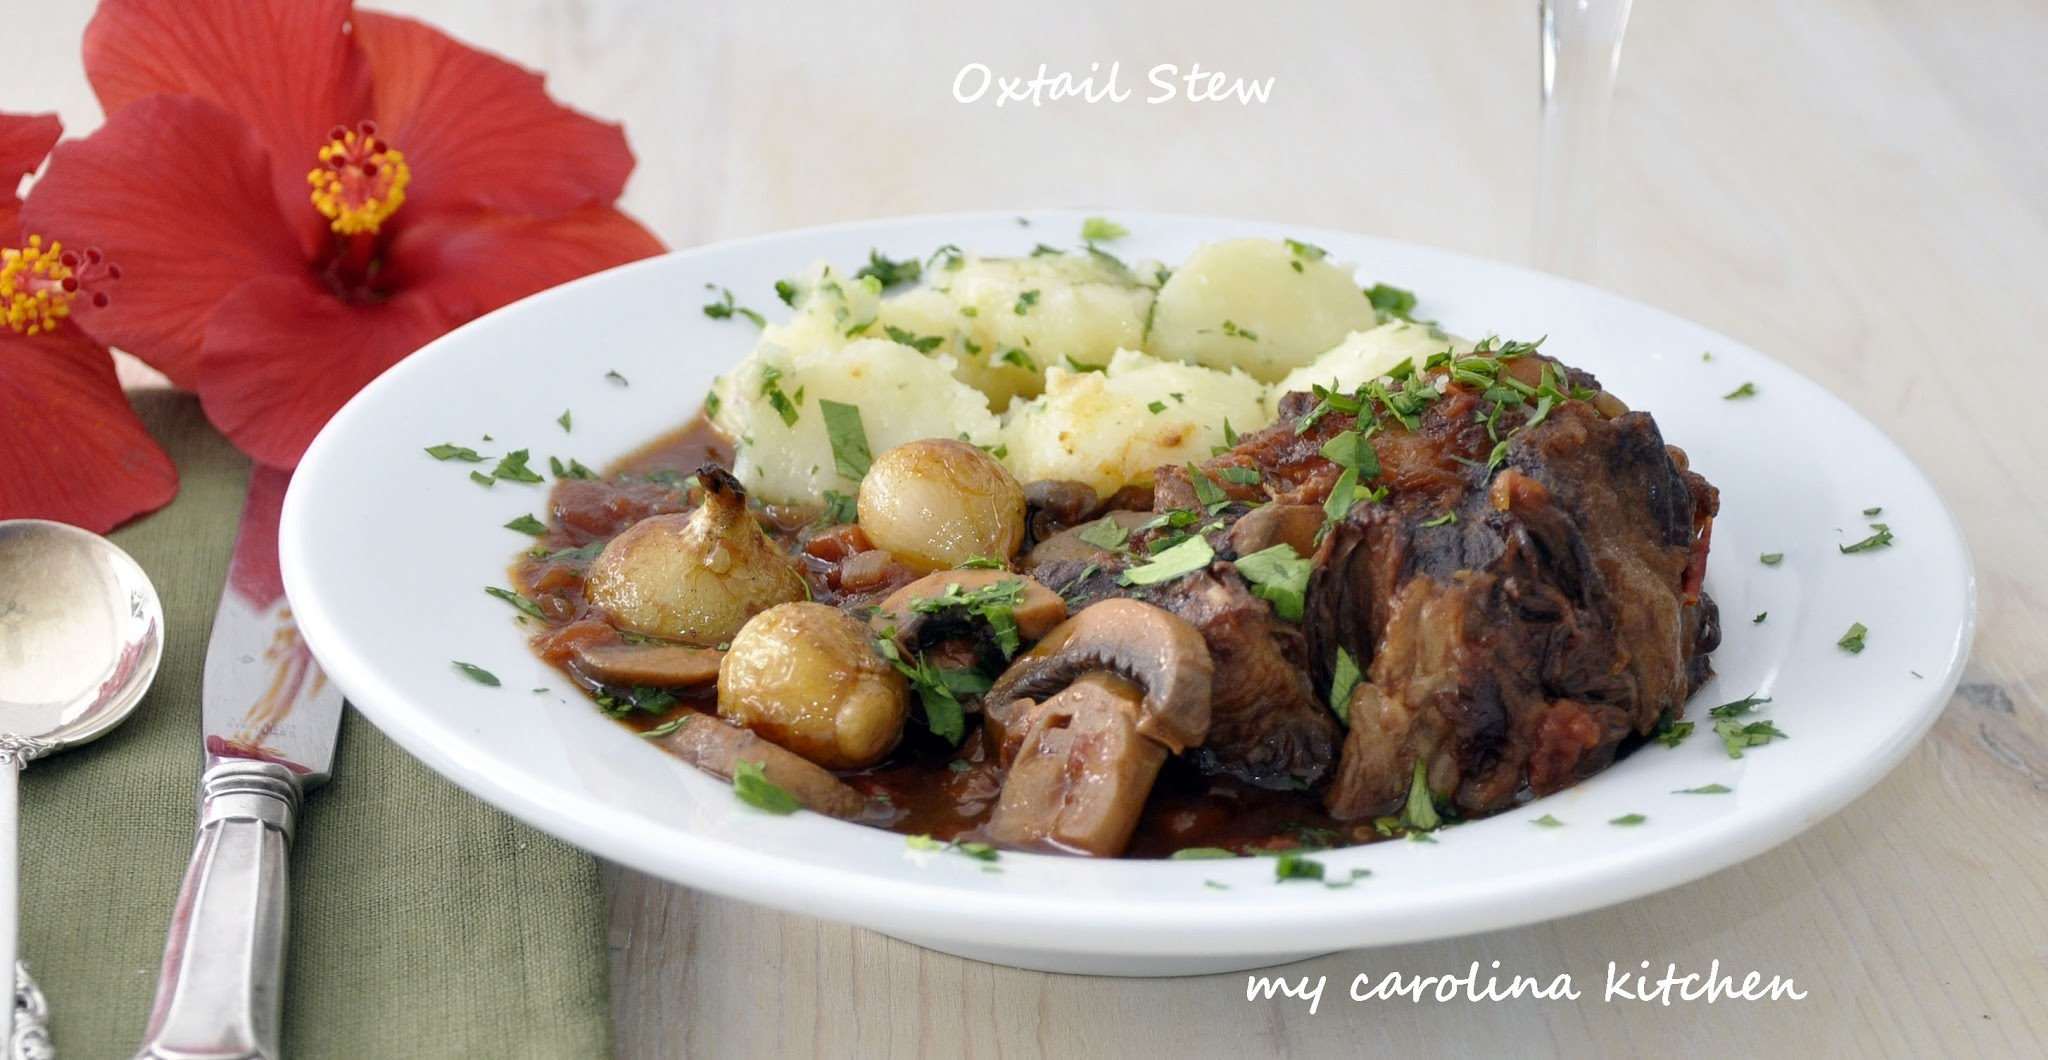 Braised Oxtail Stew